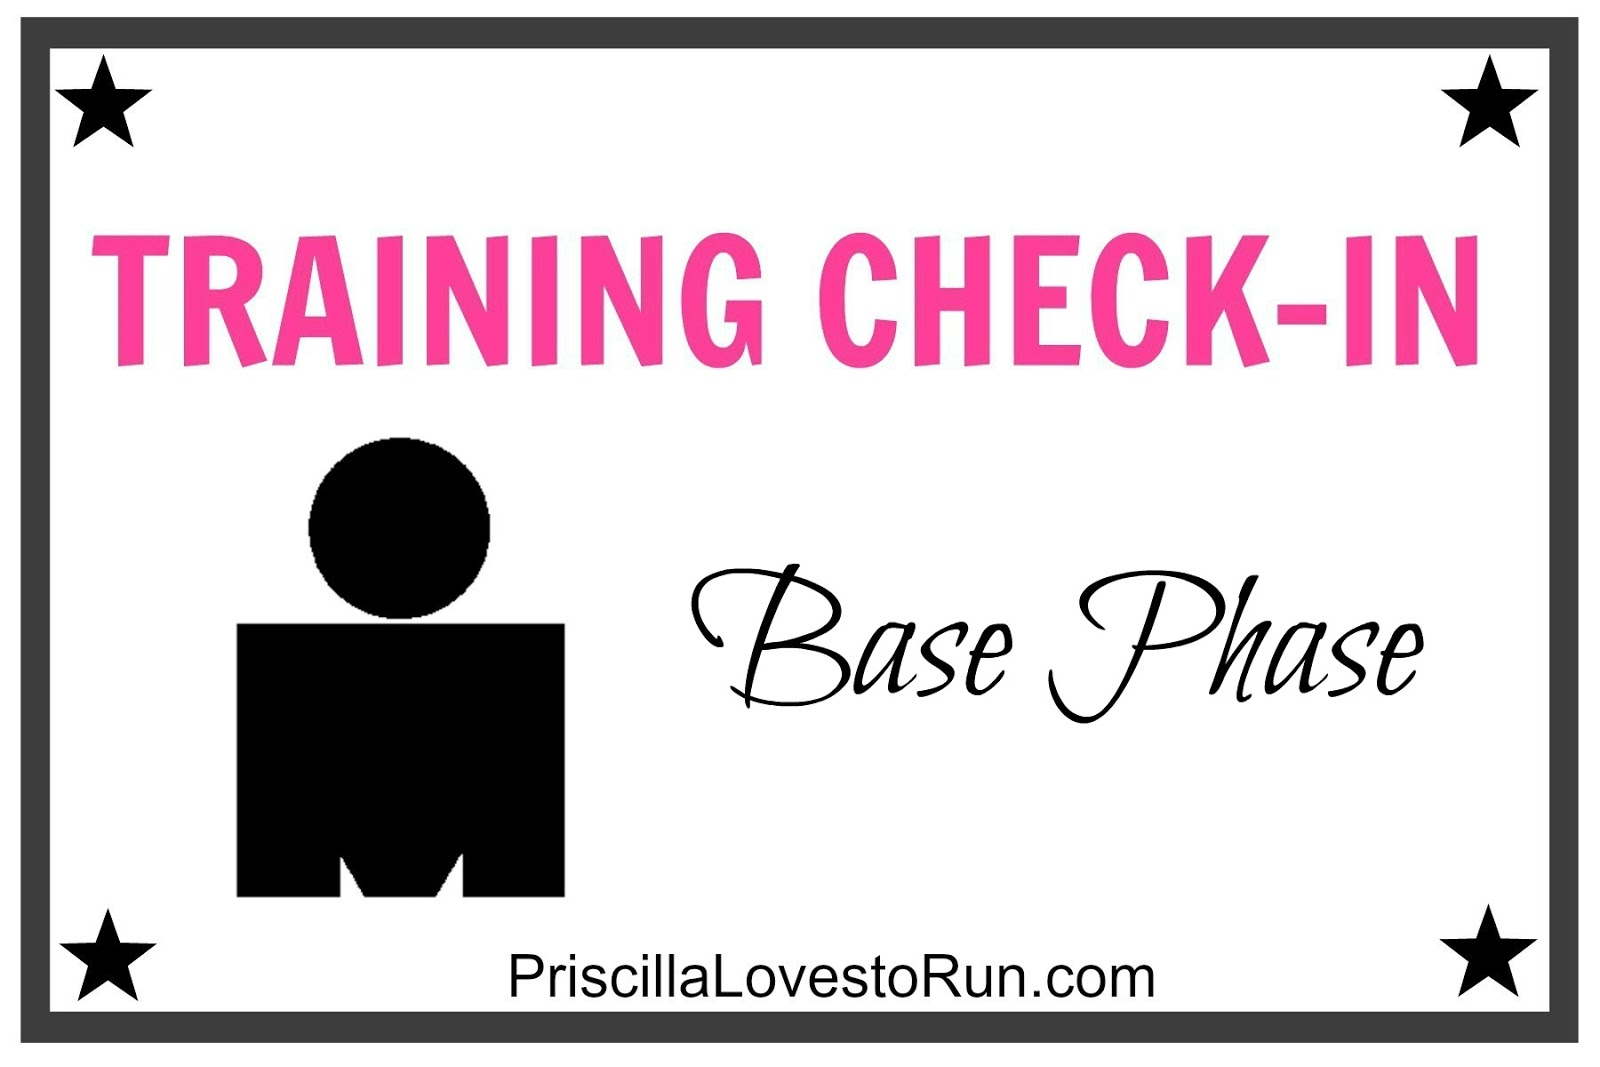 Training Check-in: Ironman – Base Phase